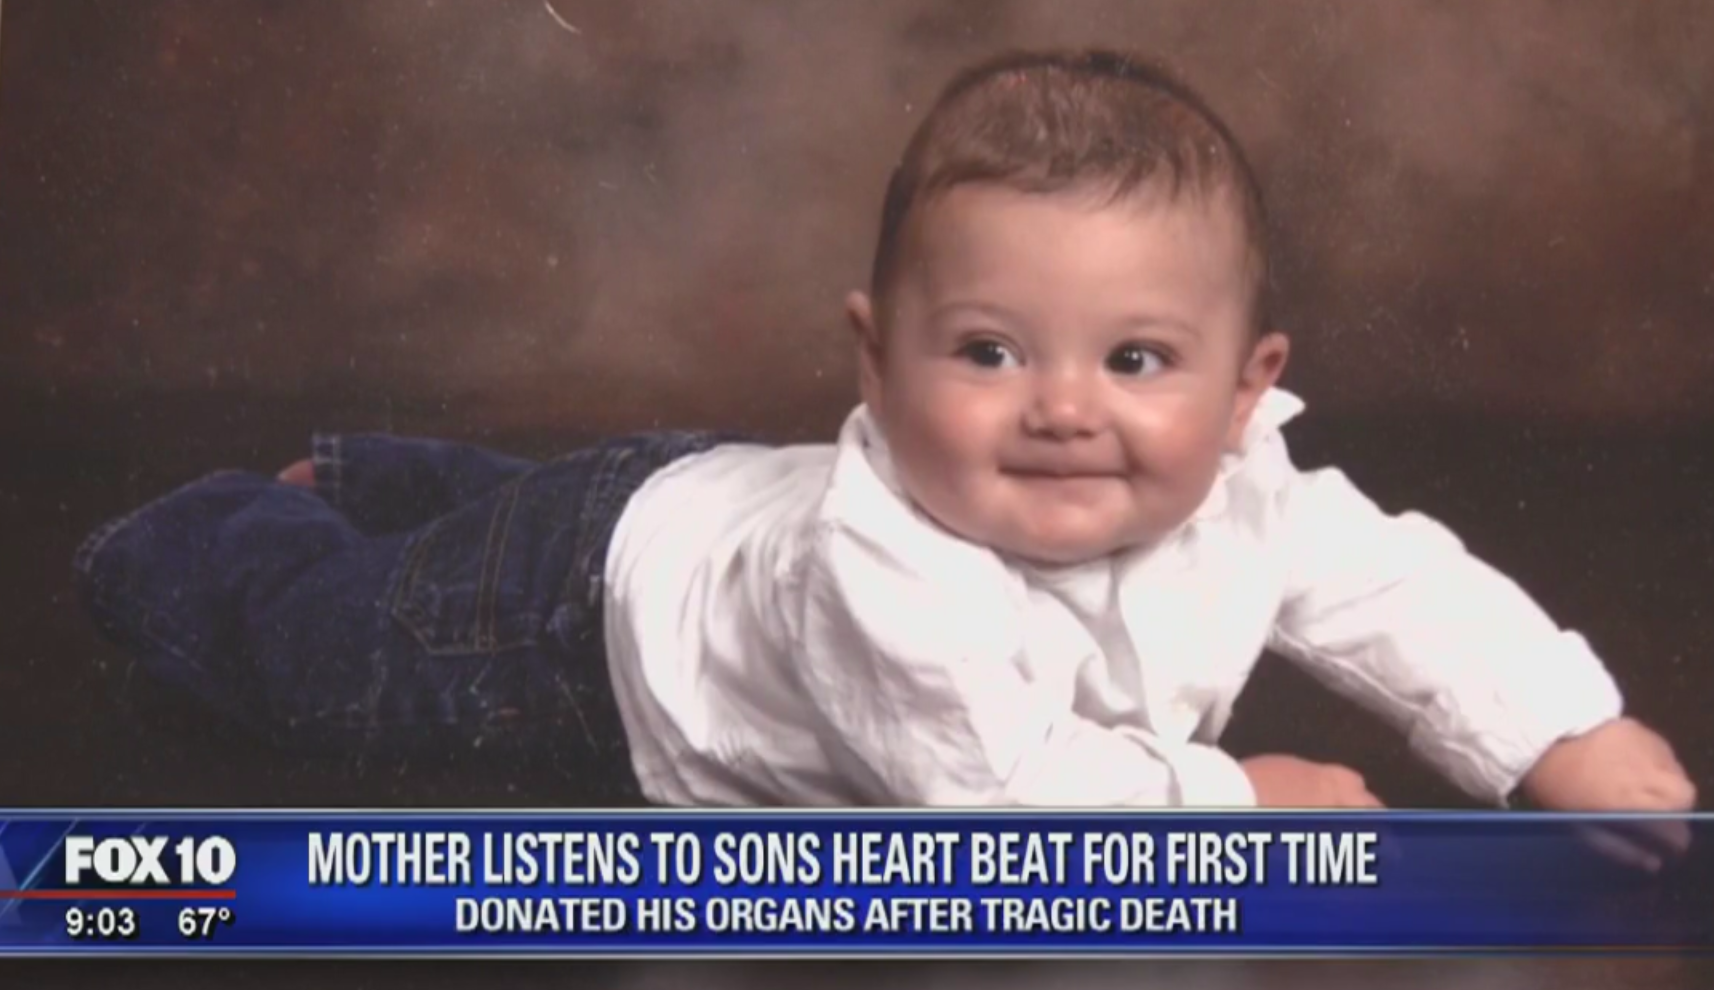 The Amazing Reason This Mom Got to Hear Her Son's Heart Beat One More